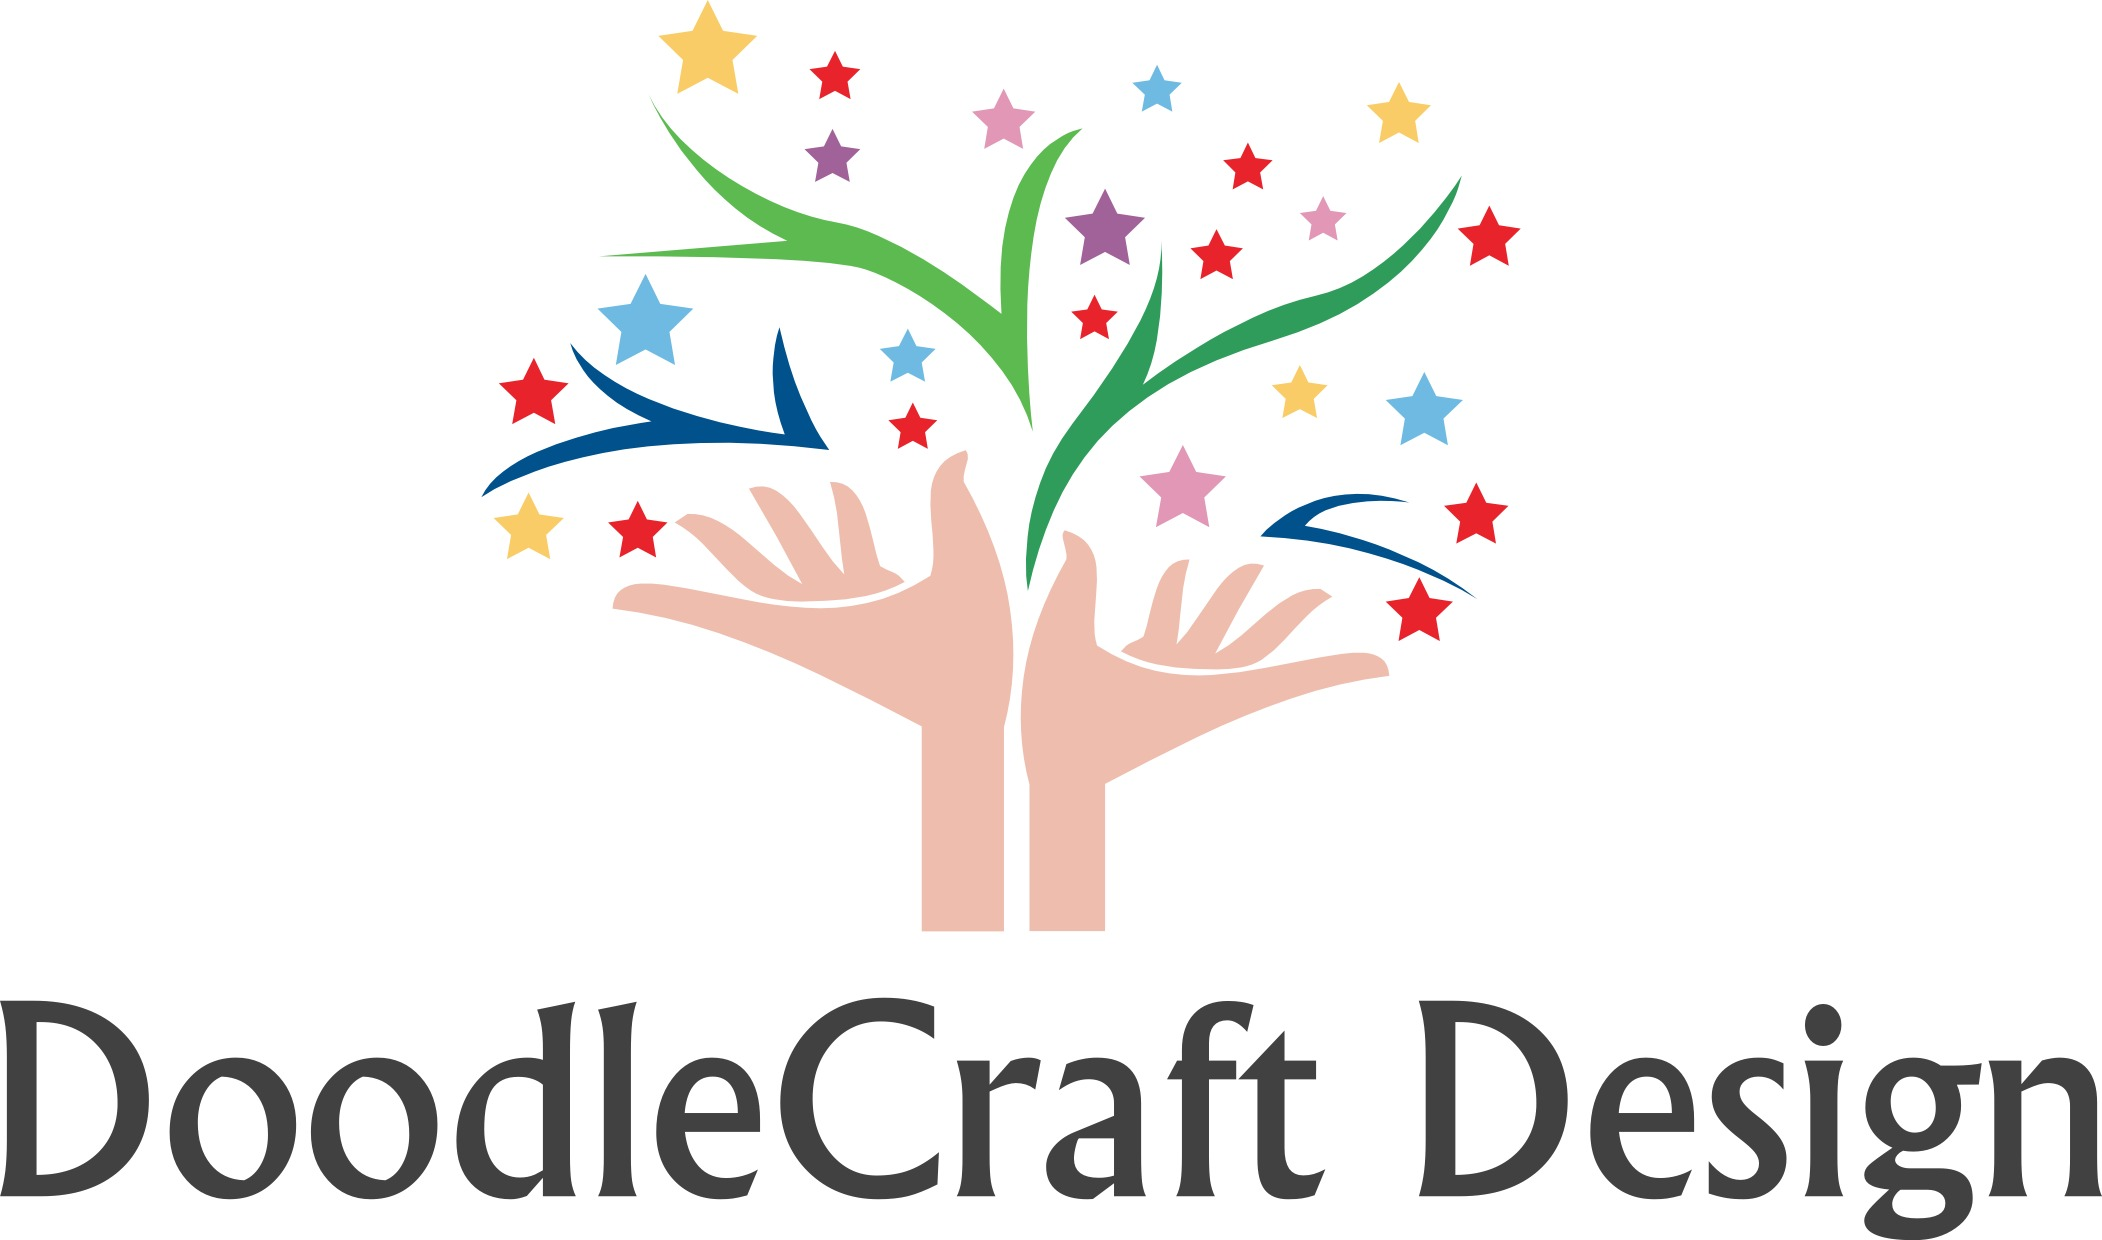 DoodleCraft Design